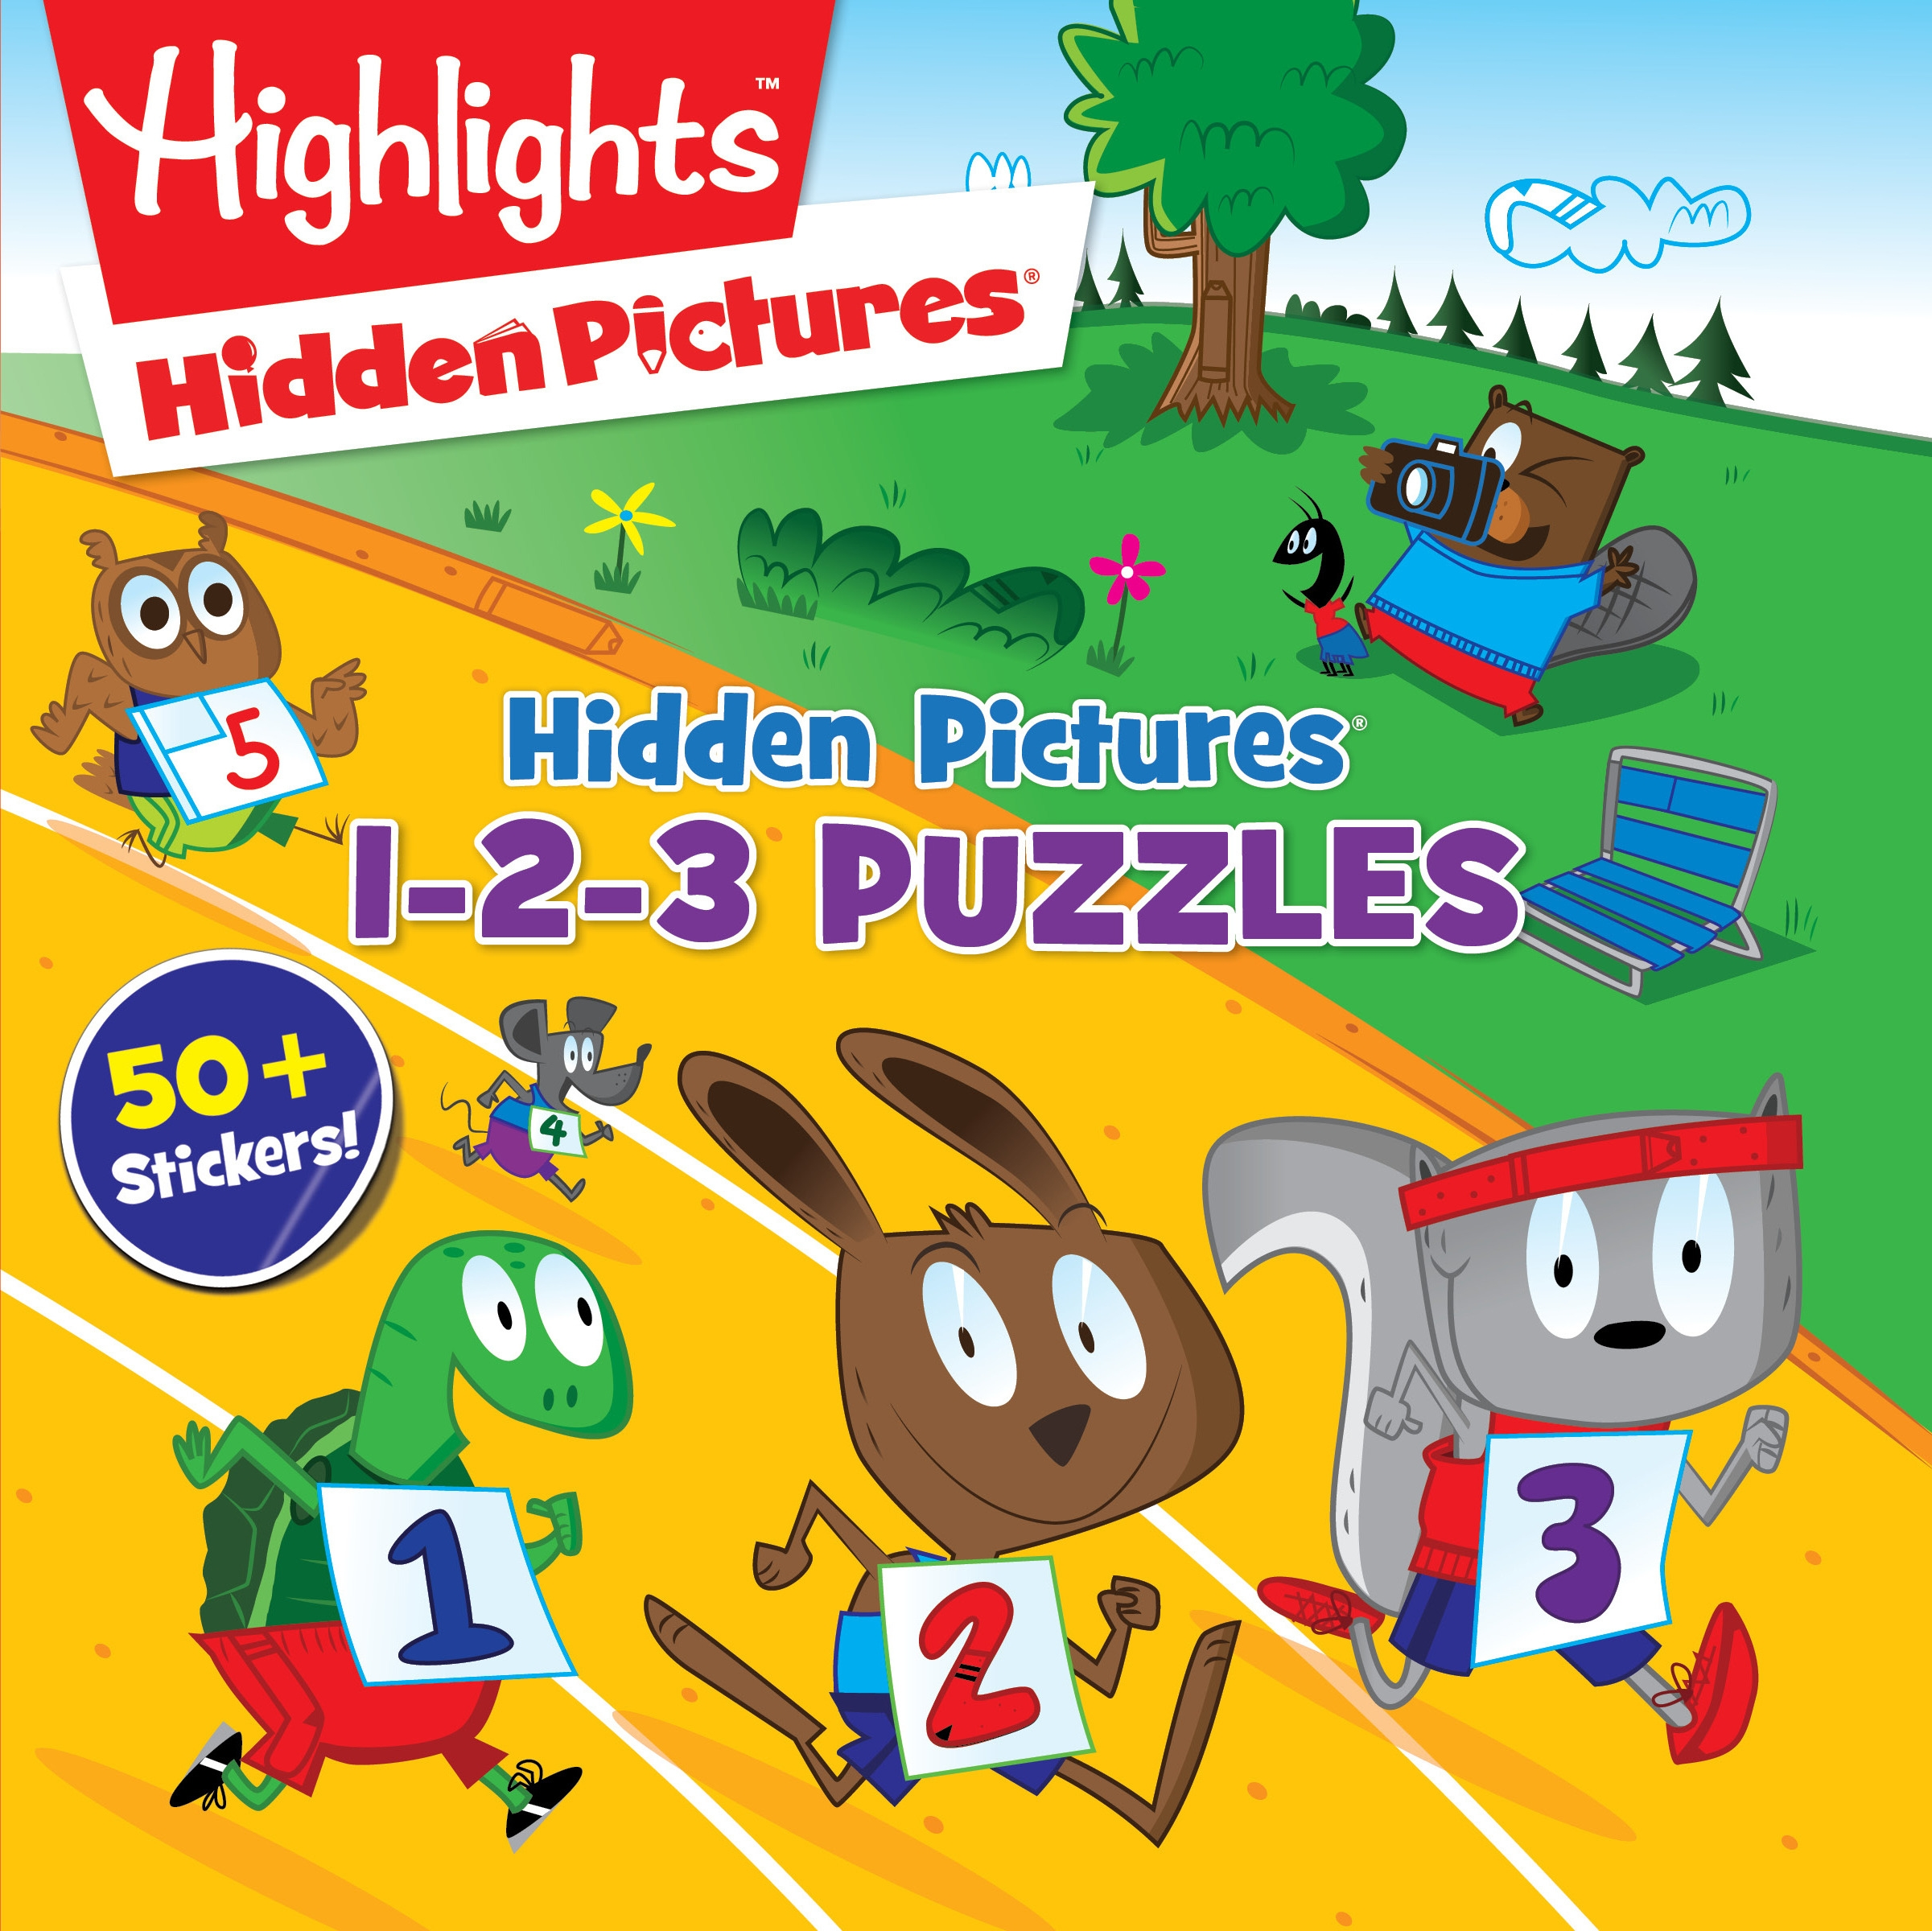 Hidden Pictures 1 2 3 Puzzles By Highlights Penguin Books Australia